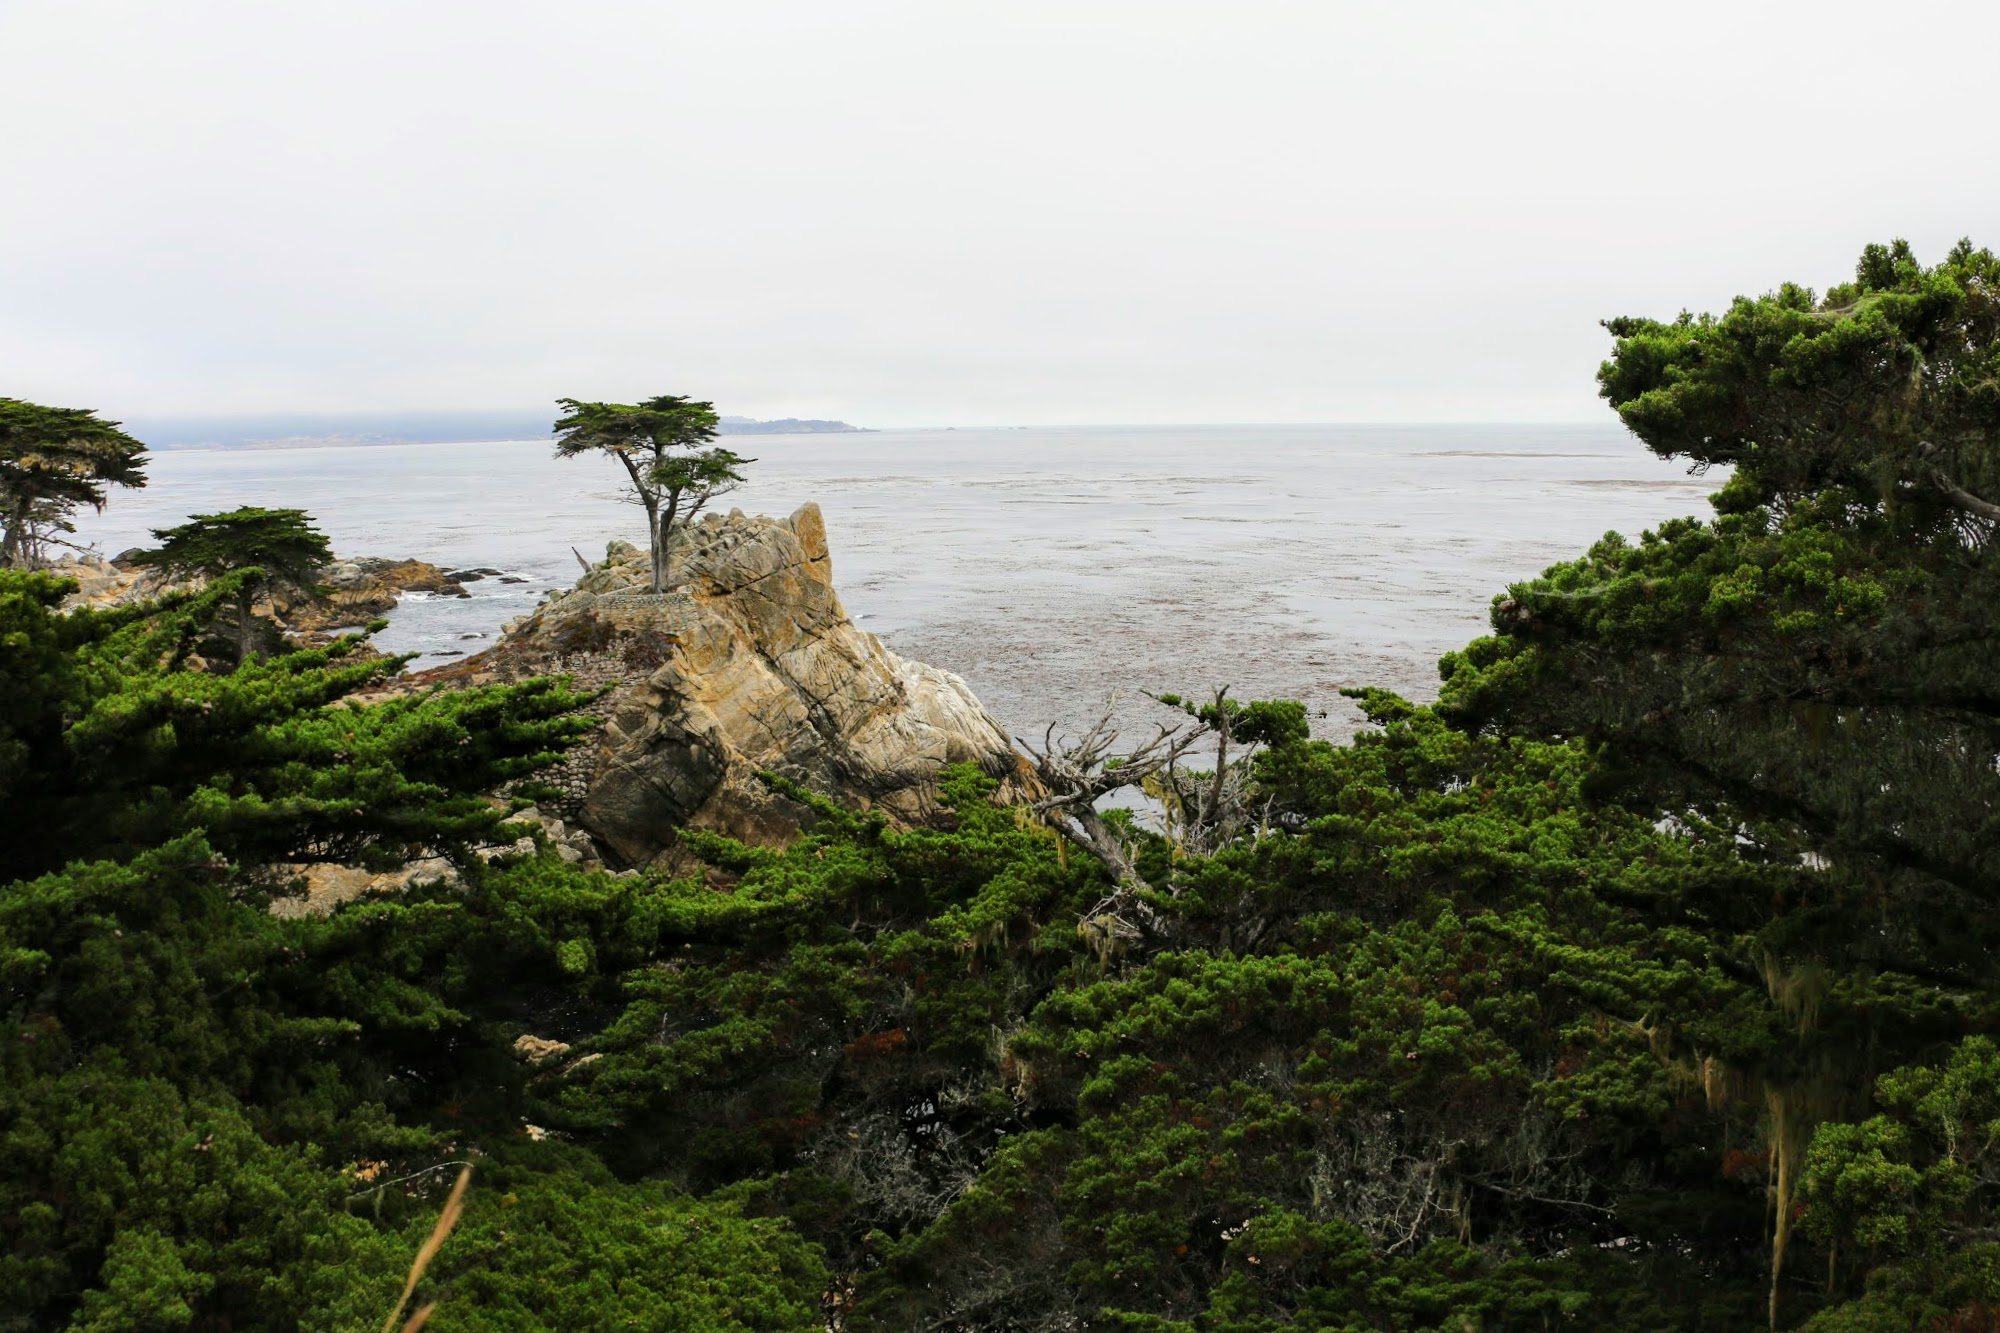 17 mile Drive, Lone Cypress Tree